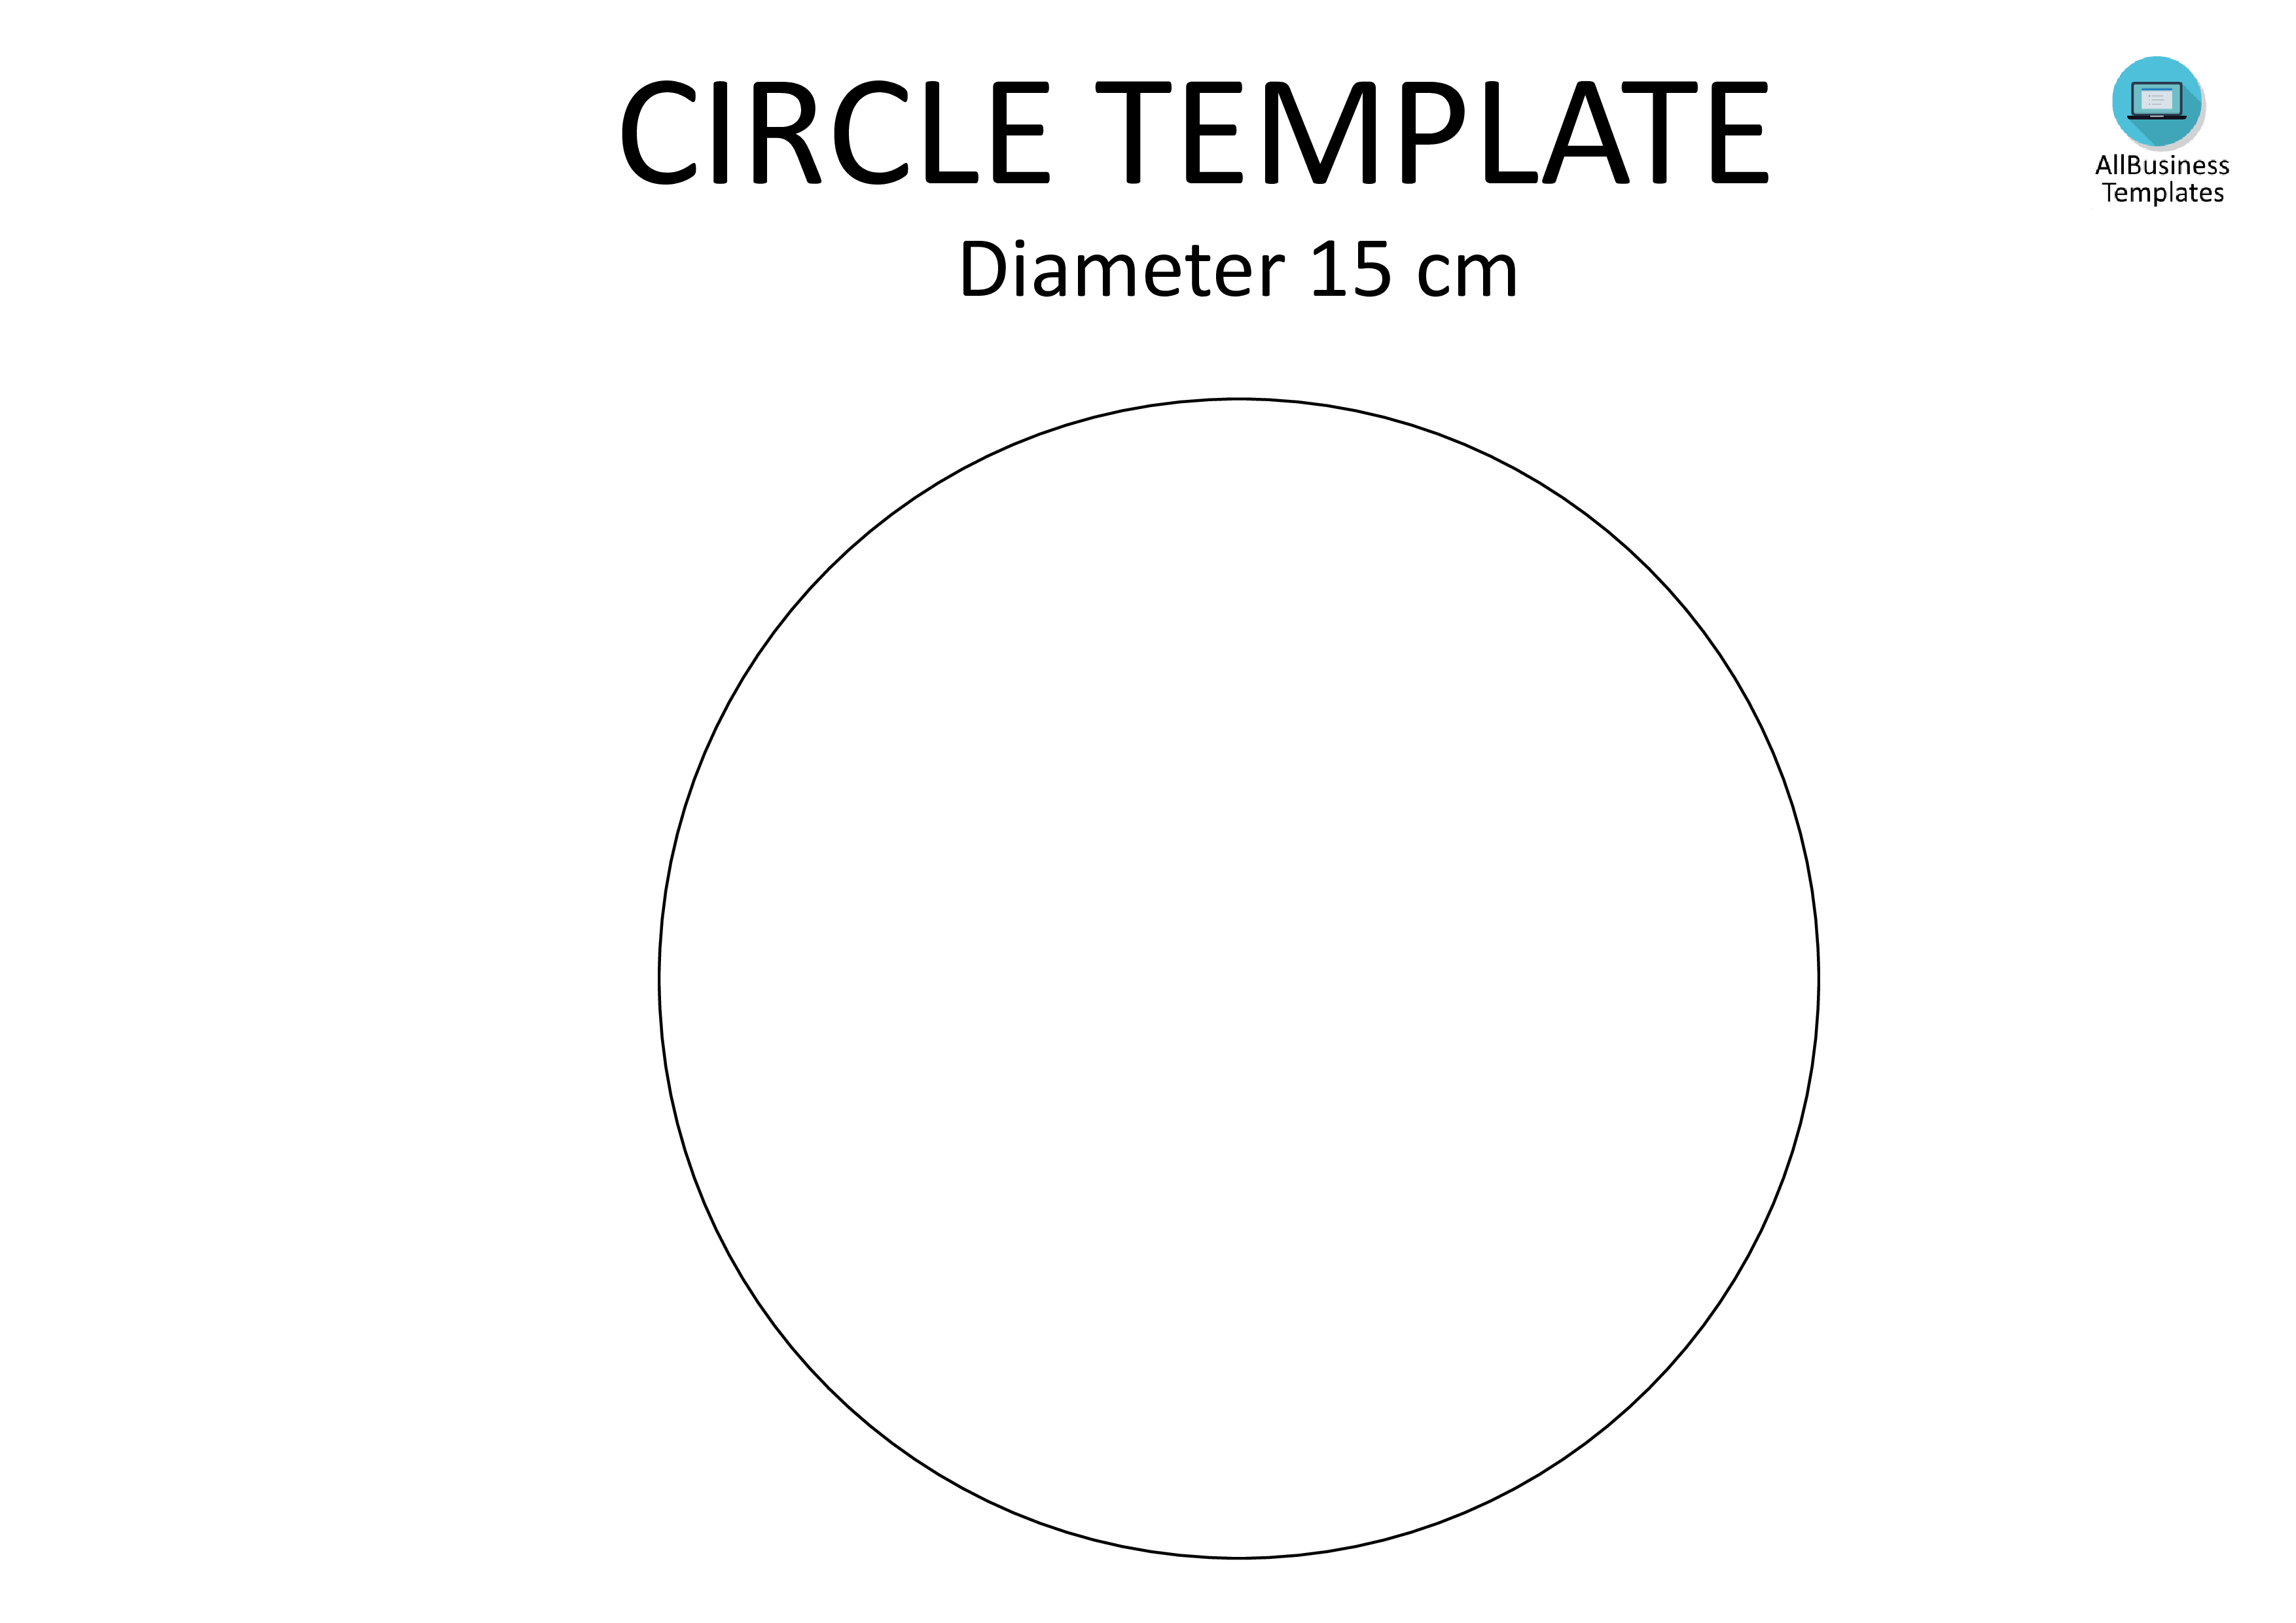 Free Circle template A4 diameter 15CM | Templates at ...